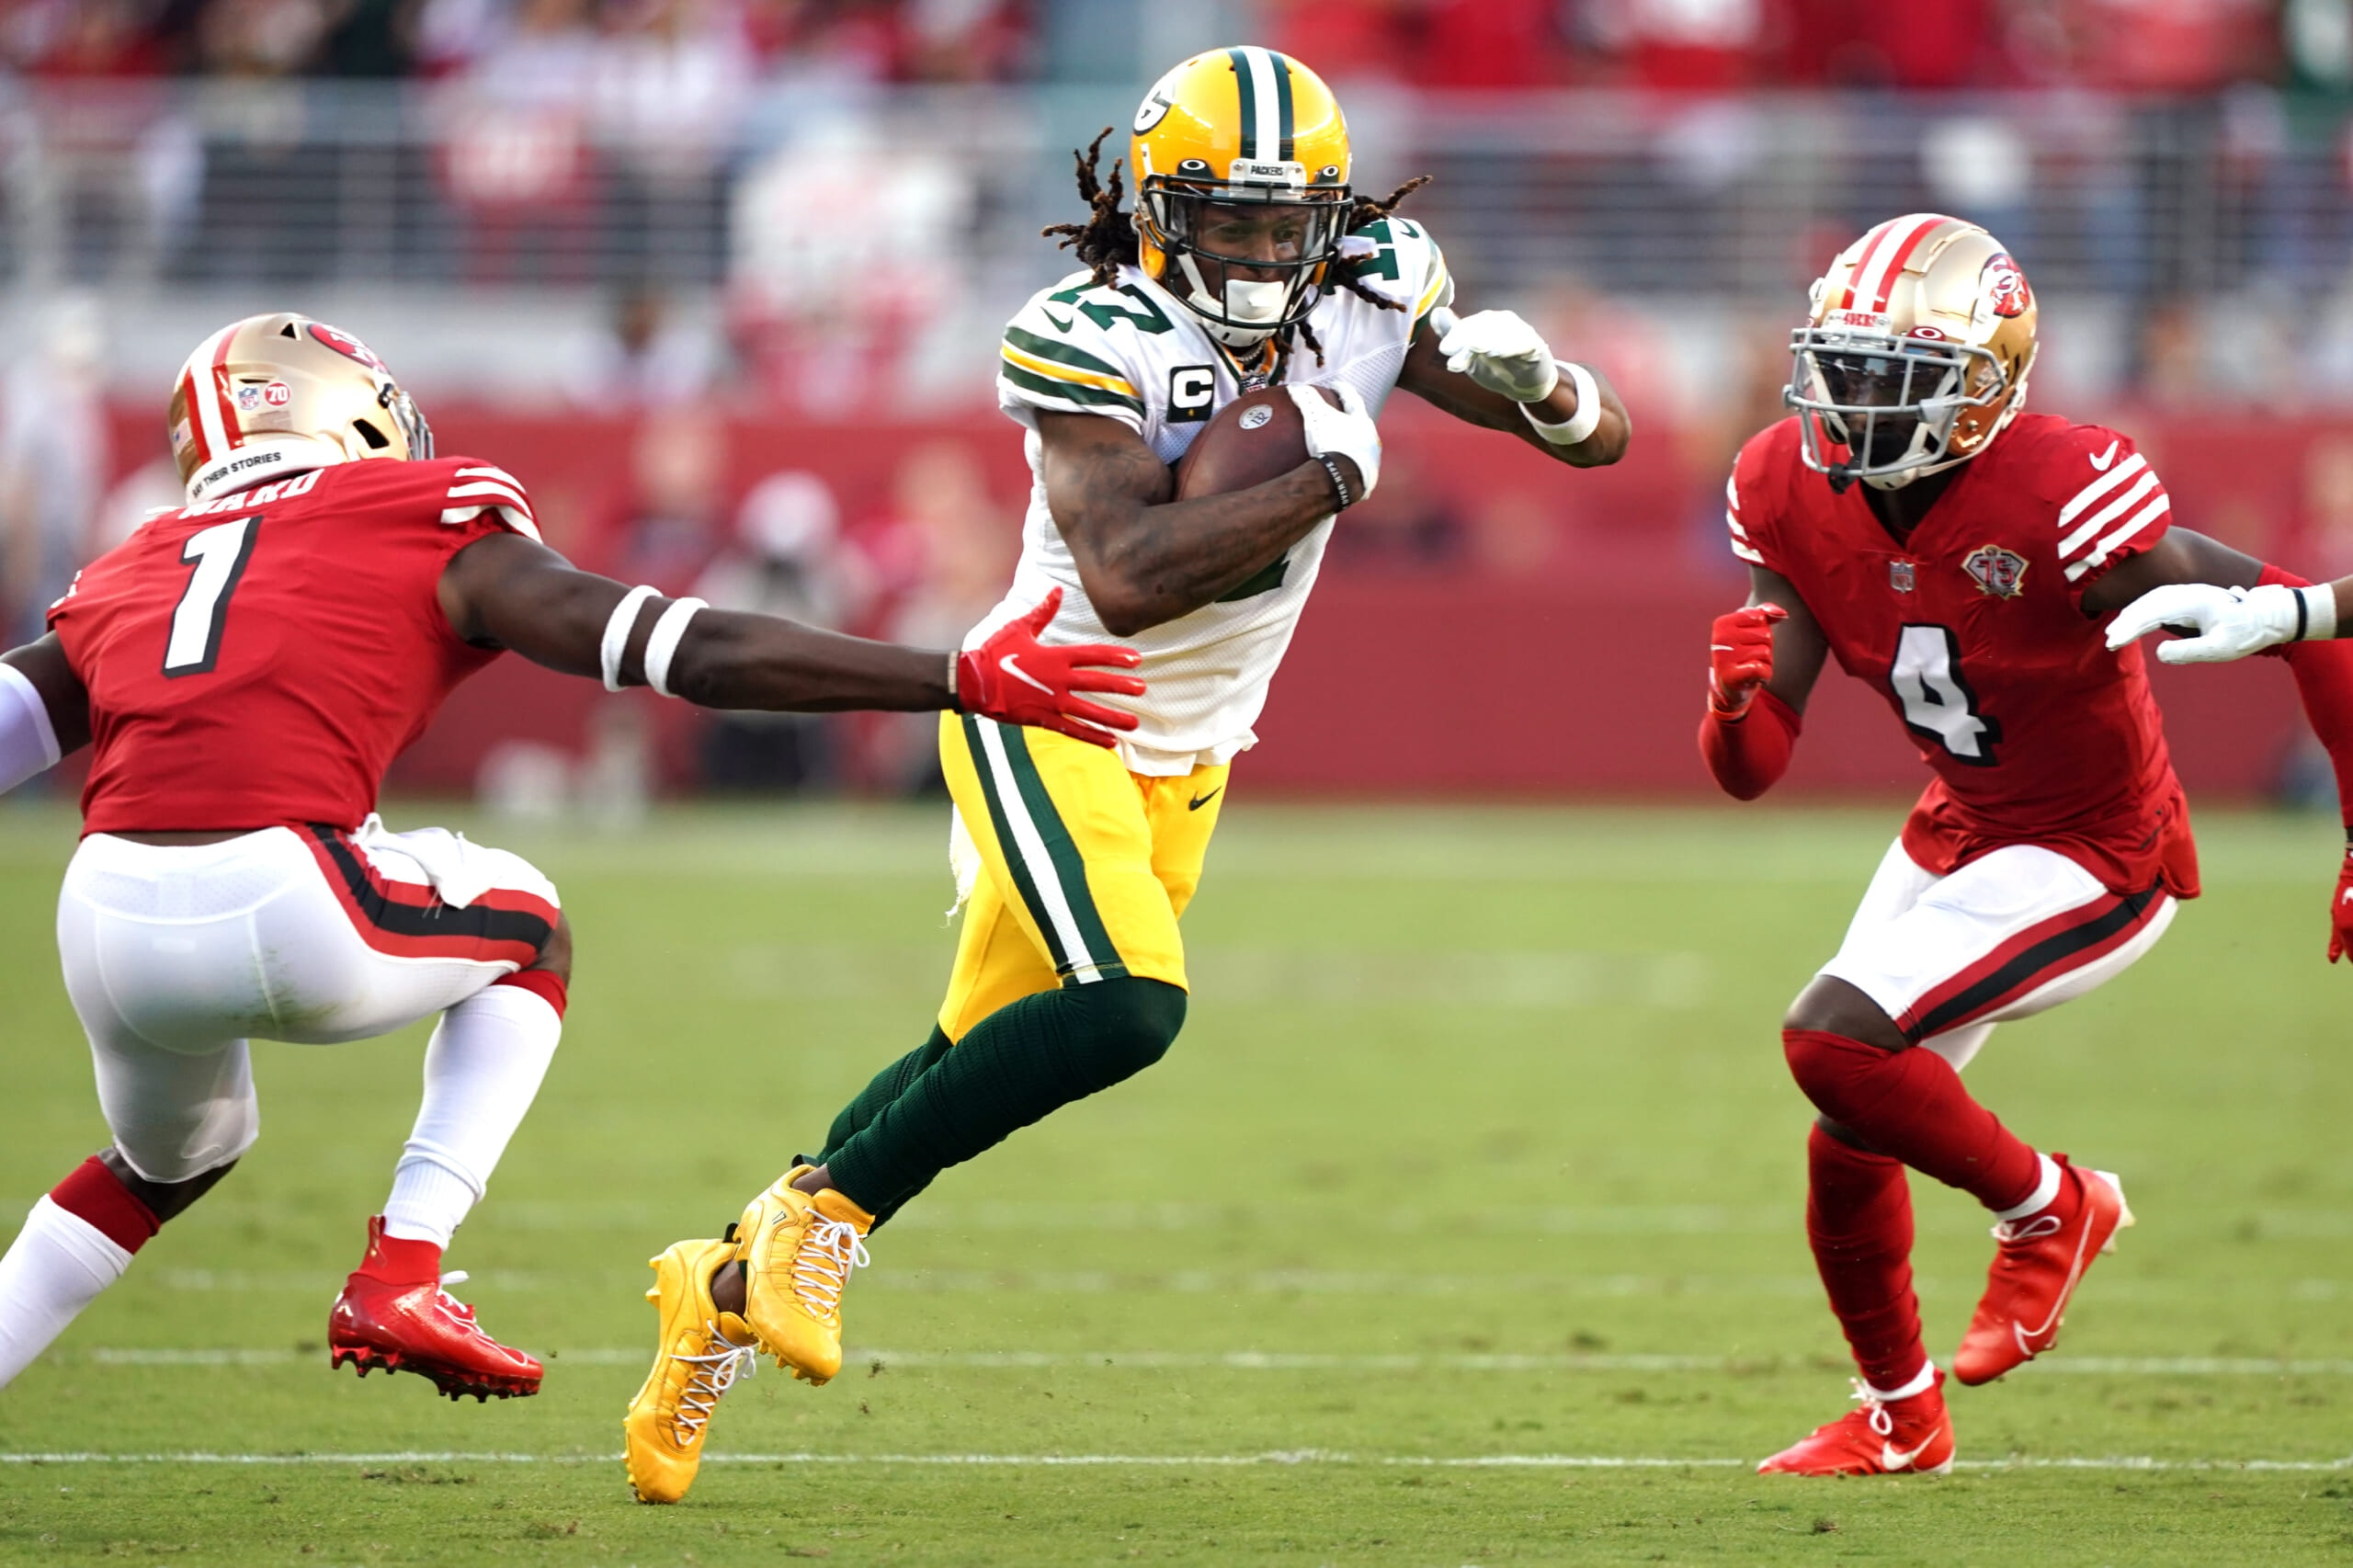 Green Bay Packers' Davante Adams knocked out, officials blasted for non-call